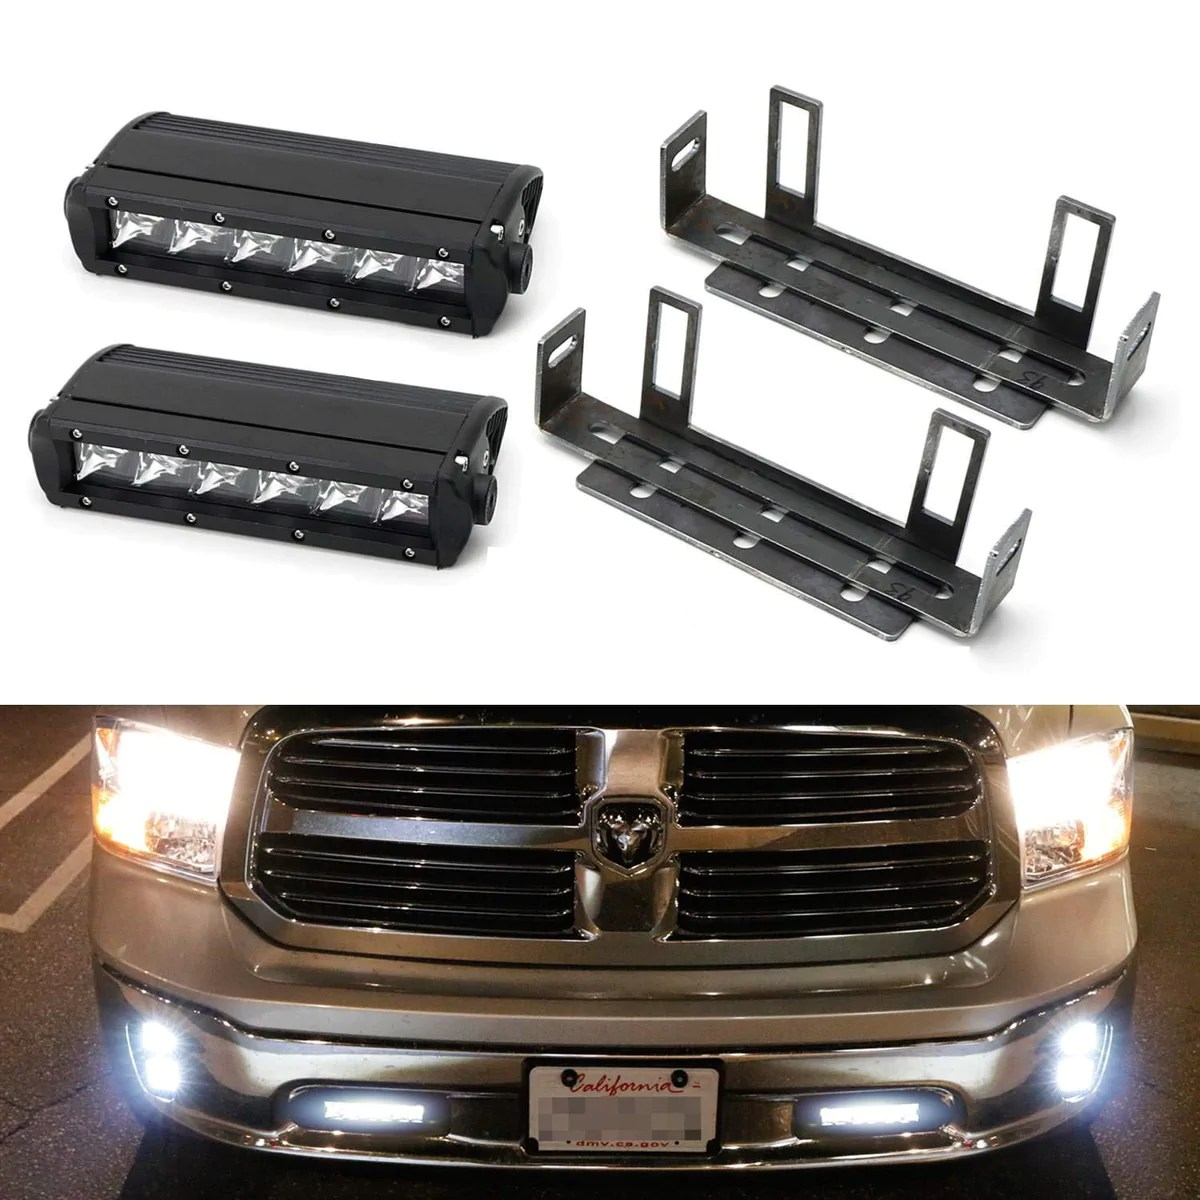 medium resolution of lower bumper led light bar kit for 2011 18 dodge ram 1500 includes 2 30w high power cree led lightbars tow hook opening area brackets on off switch